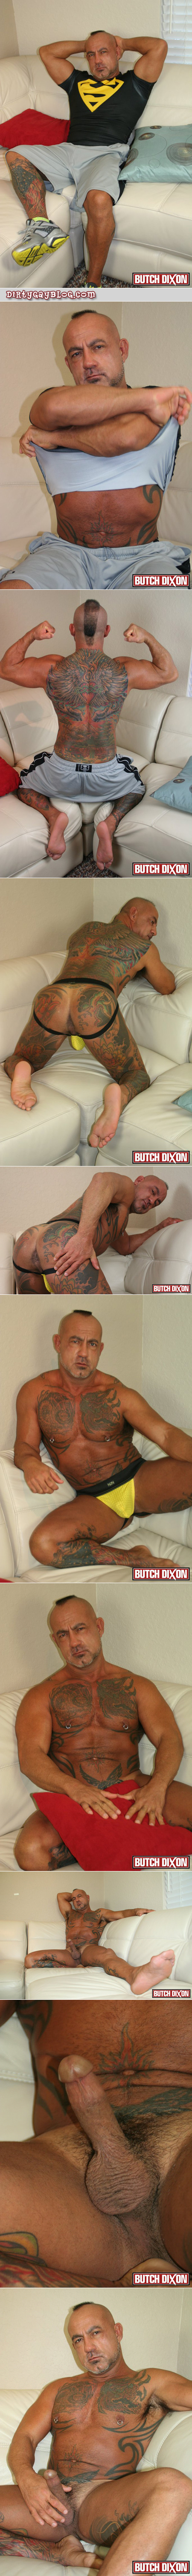 Tanned, beefy, heavily tattooed older man in a jockstrap jacking off on the couch.